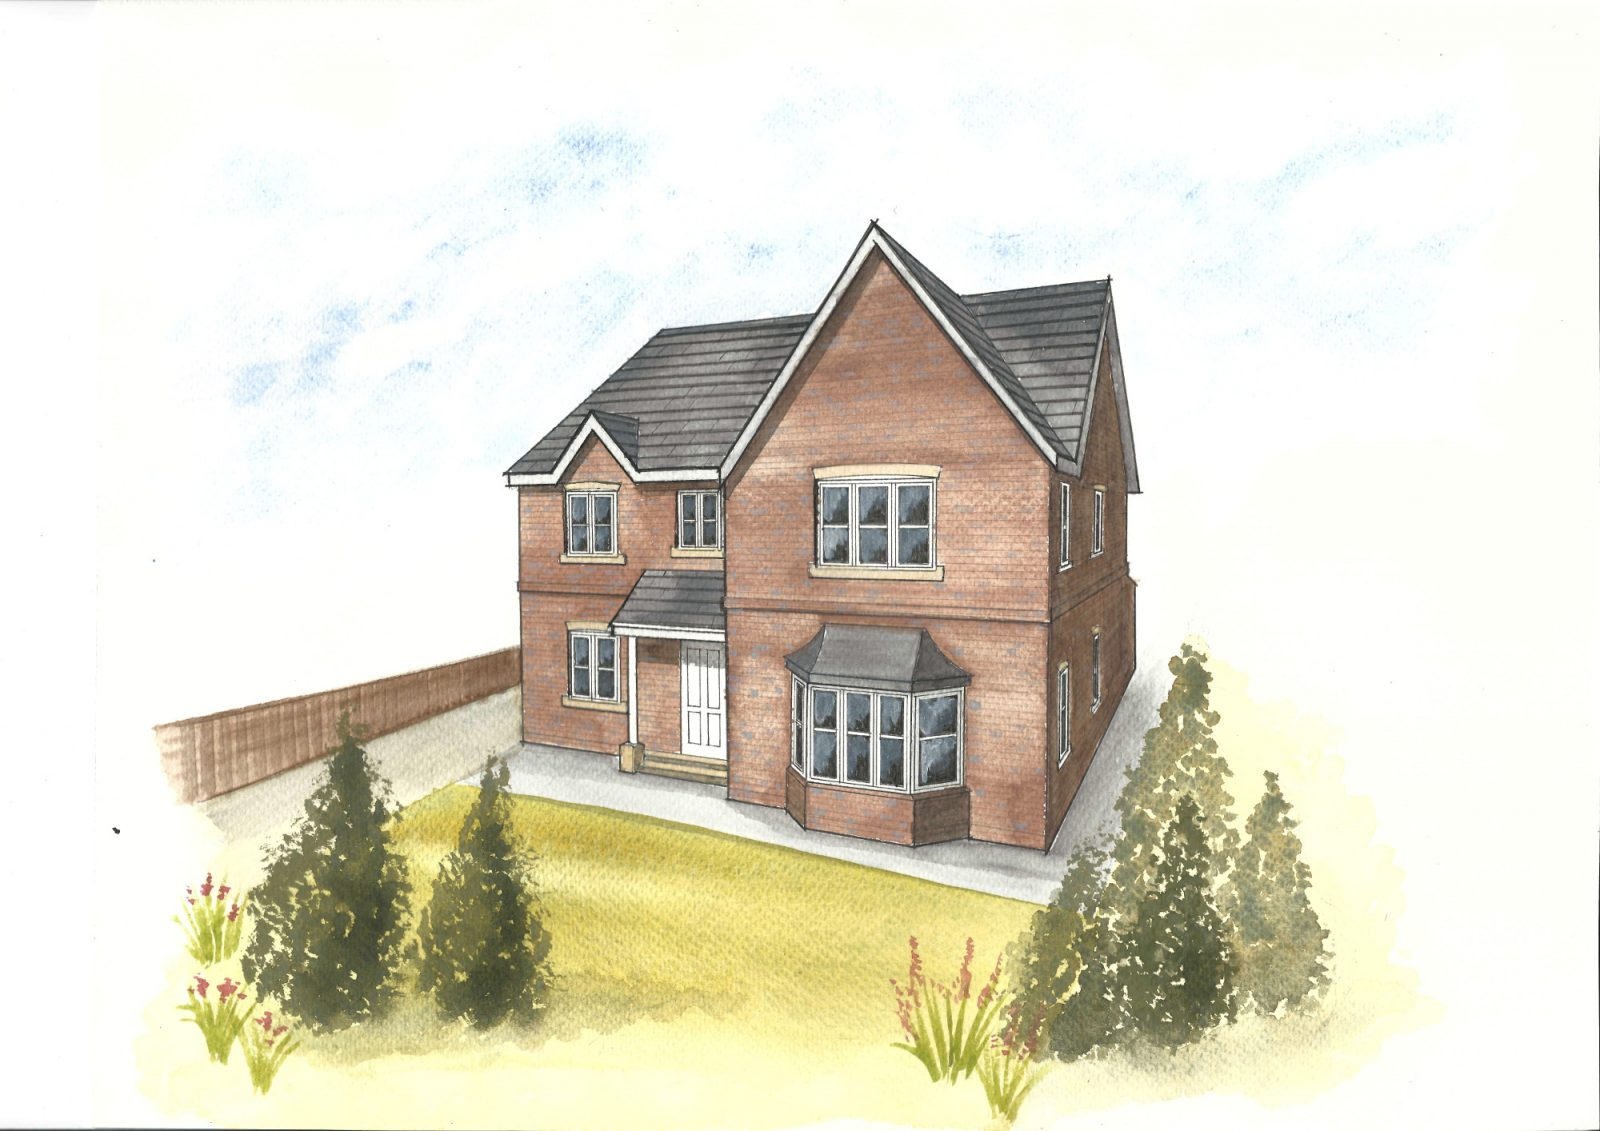 plot 4 artists impression